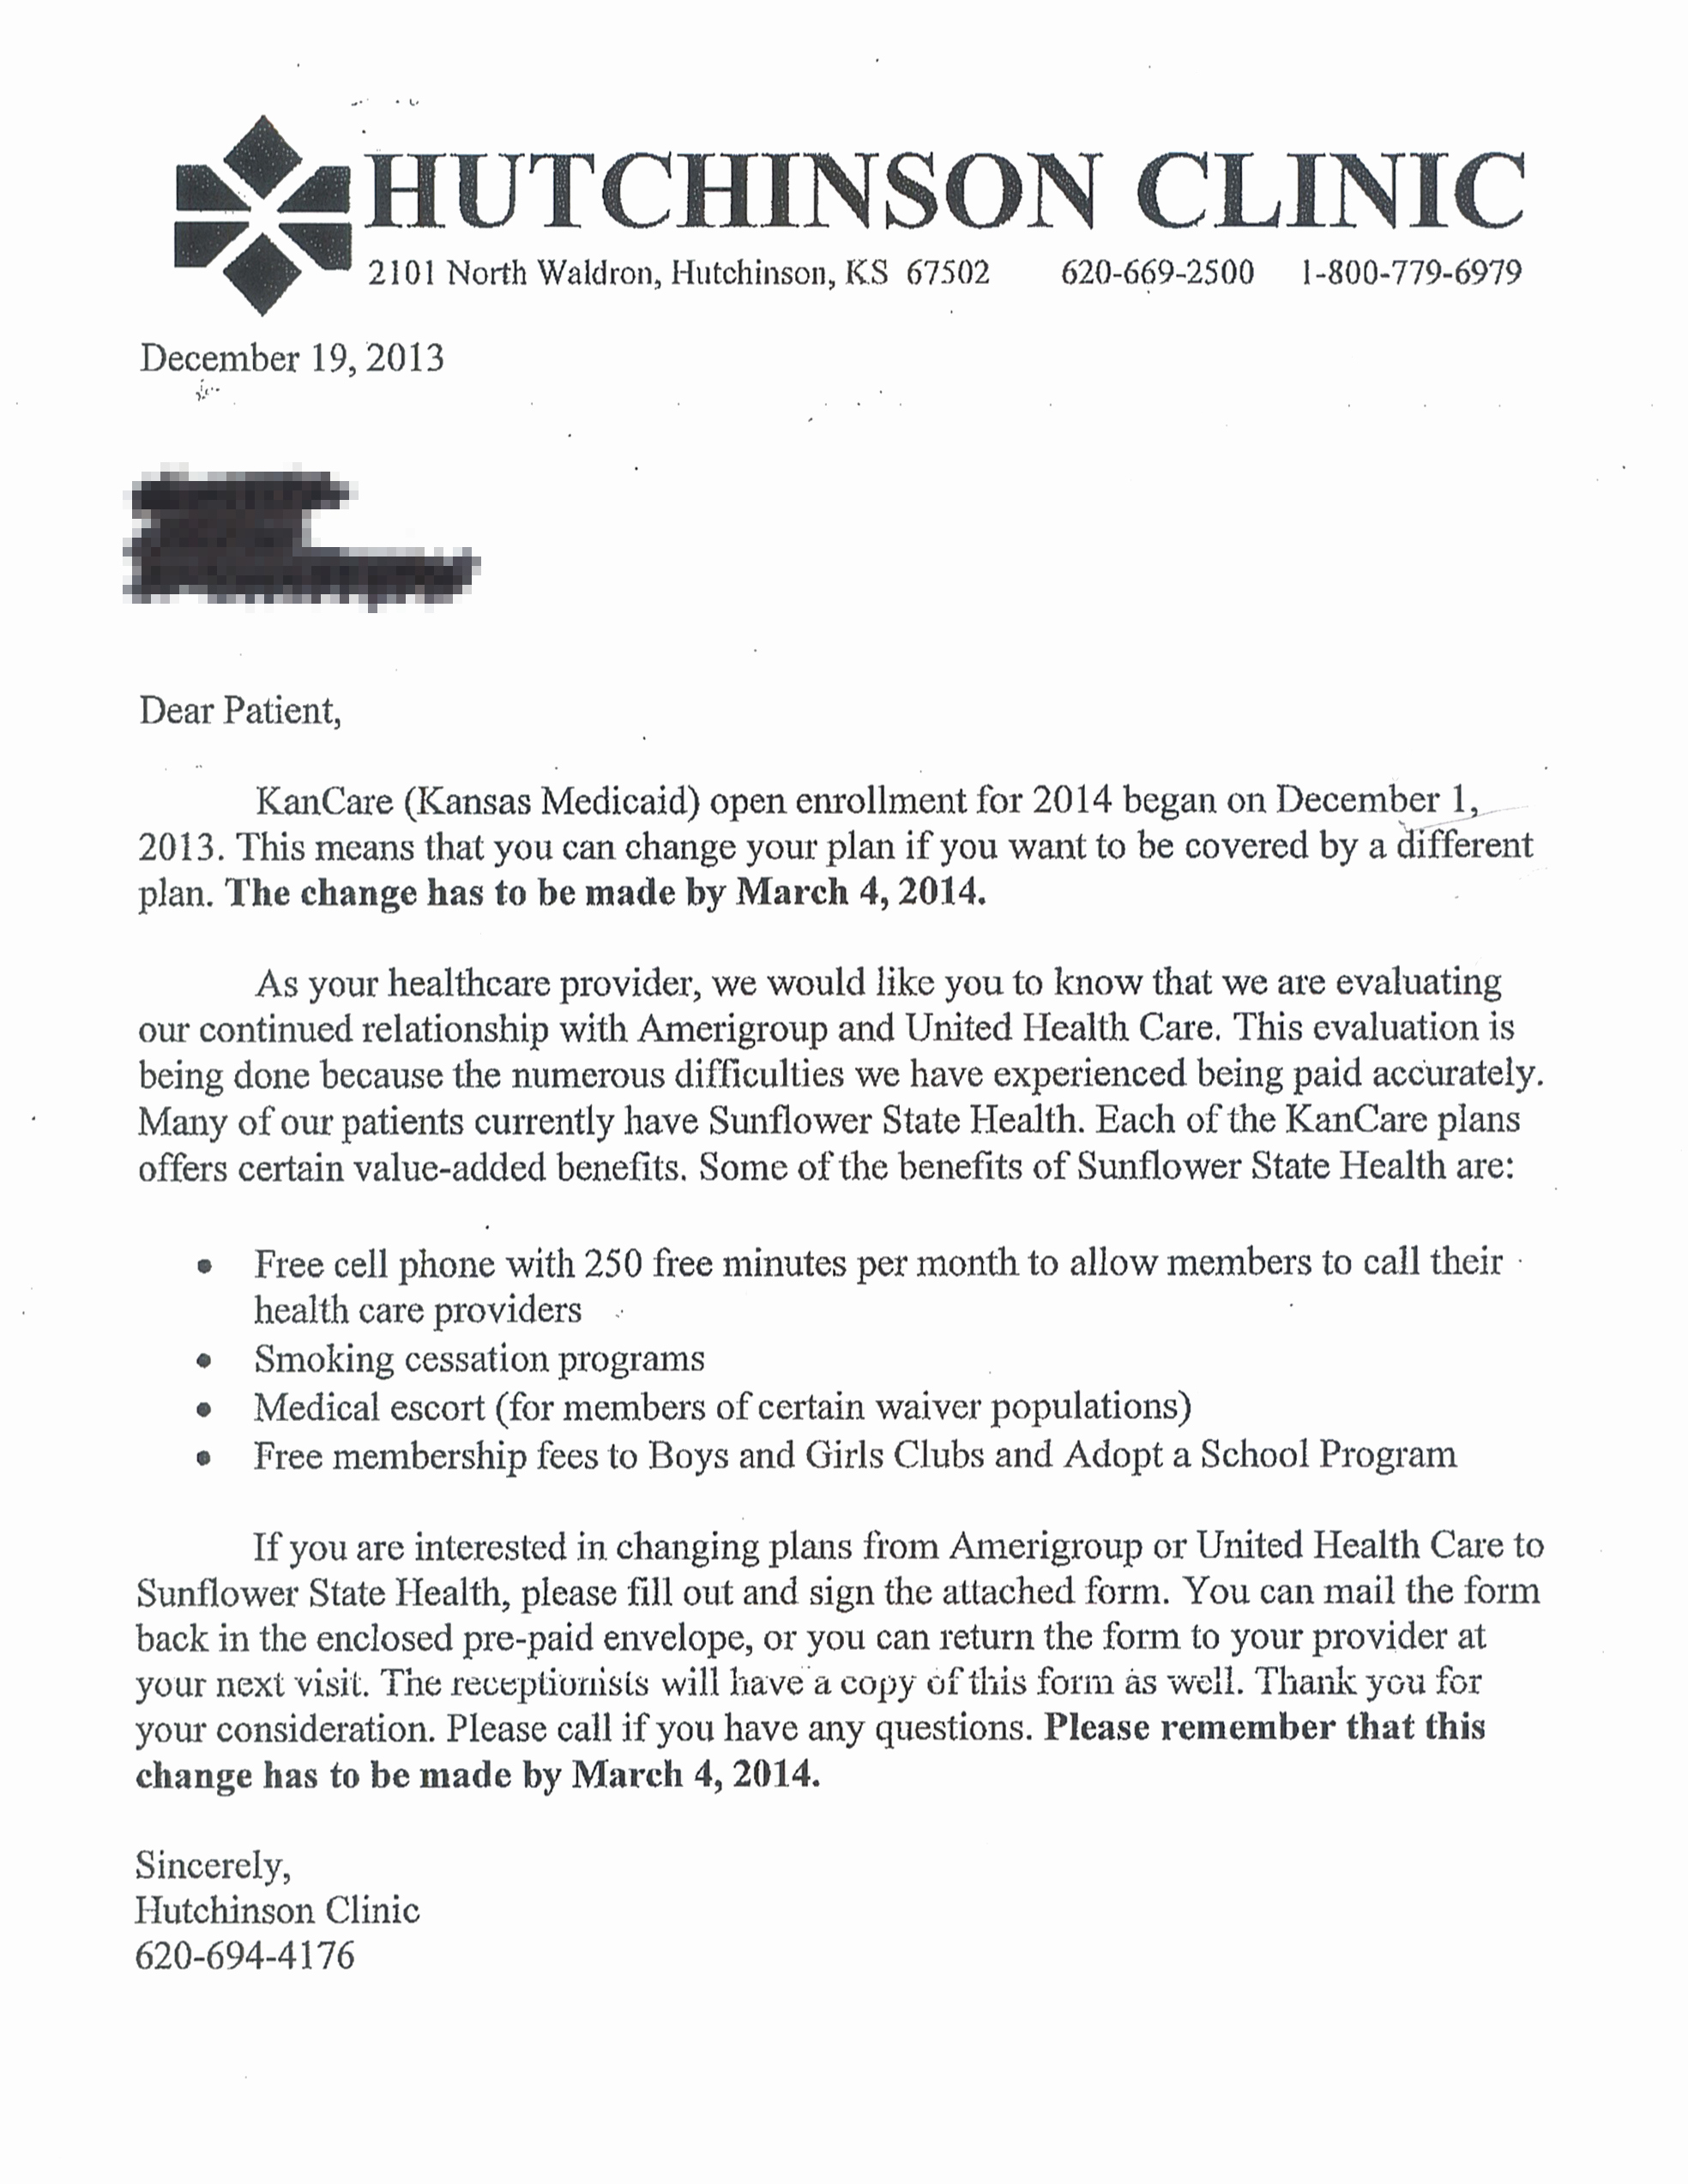 Open Enrollment Letter Template Elegant Open Enrollment Letter House Dems Have A Few Questions